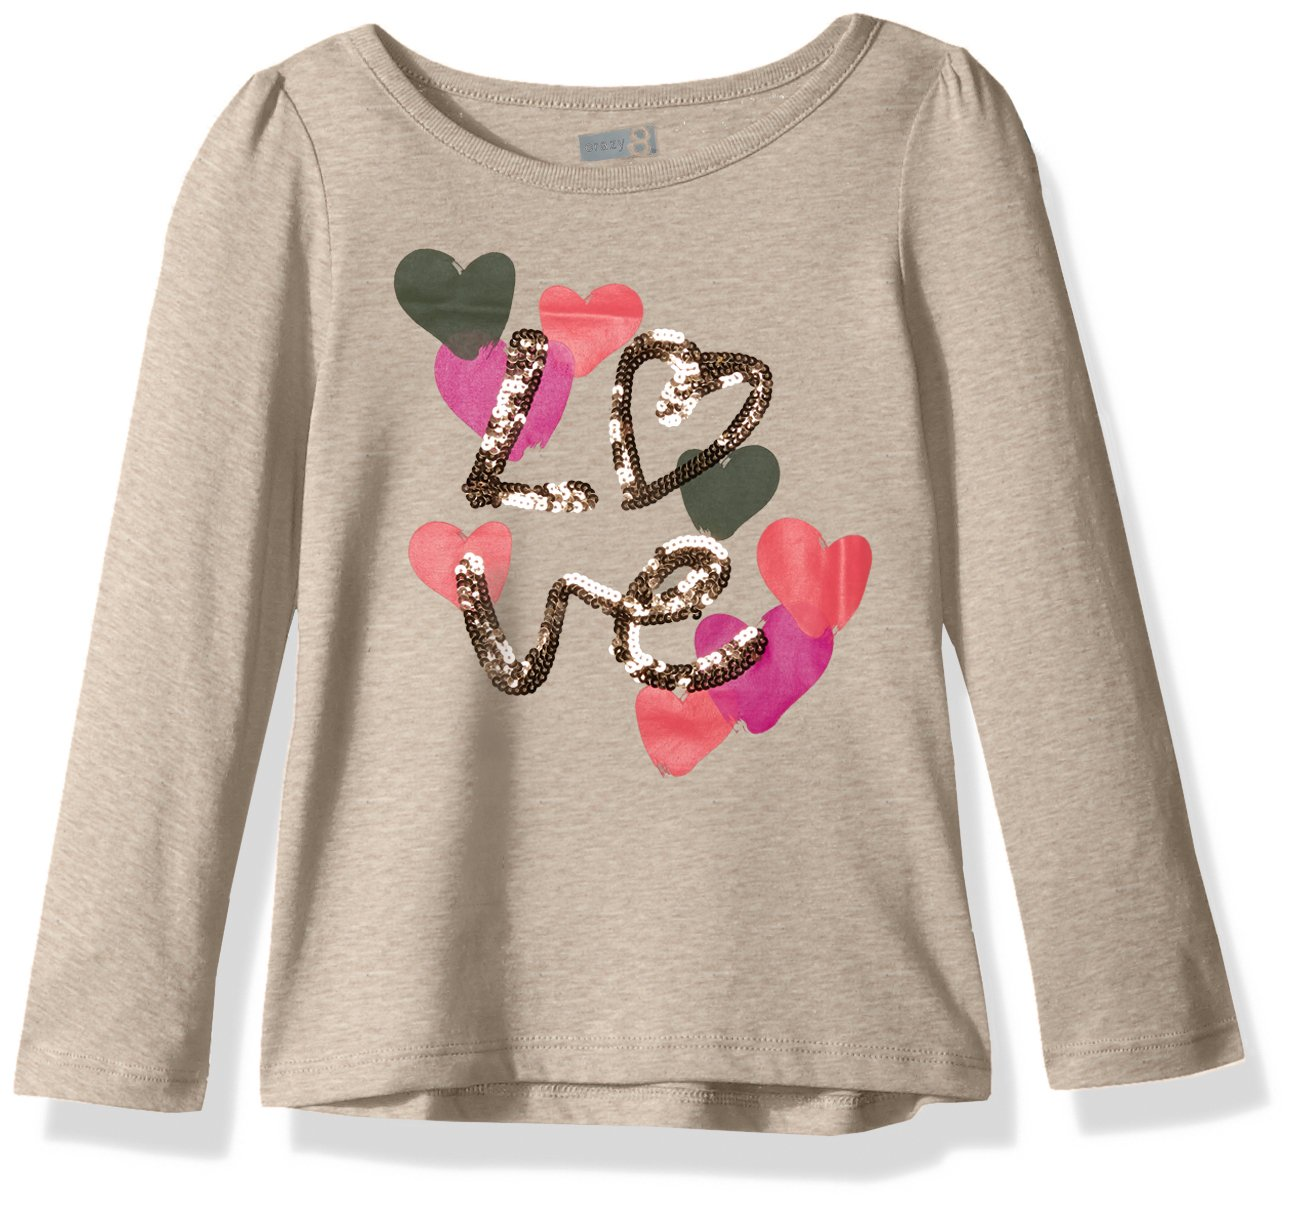 Crazy 8 Little Girls' Long Sleeve Sparkle Graphic Tee, Tan Love Print, S by Crazy 8 (Image #1)